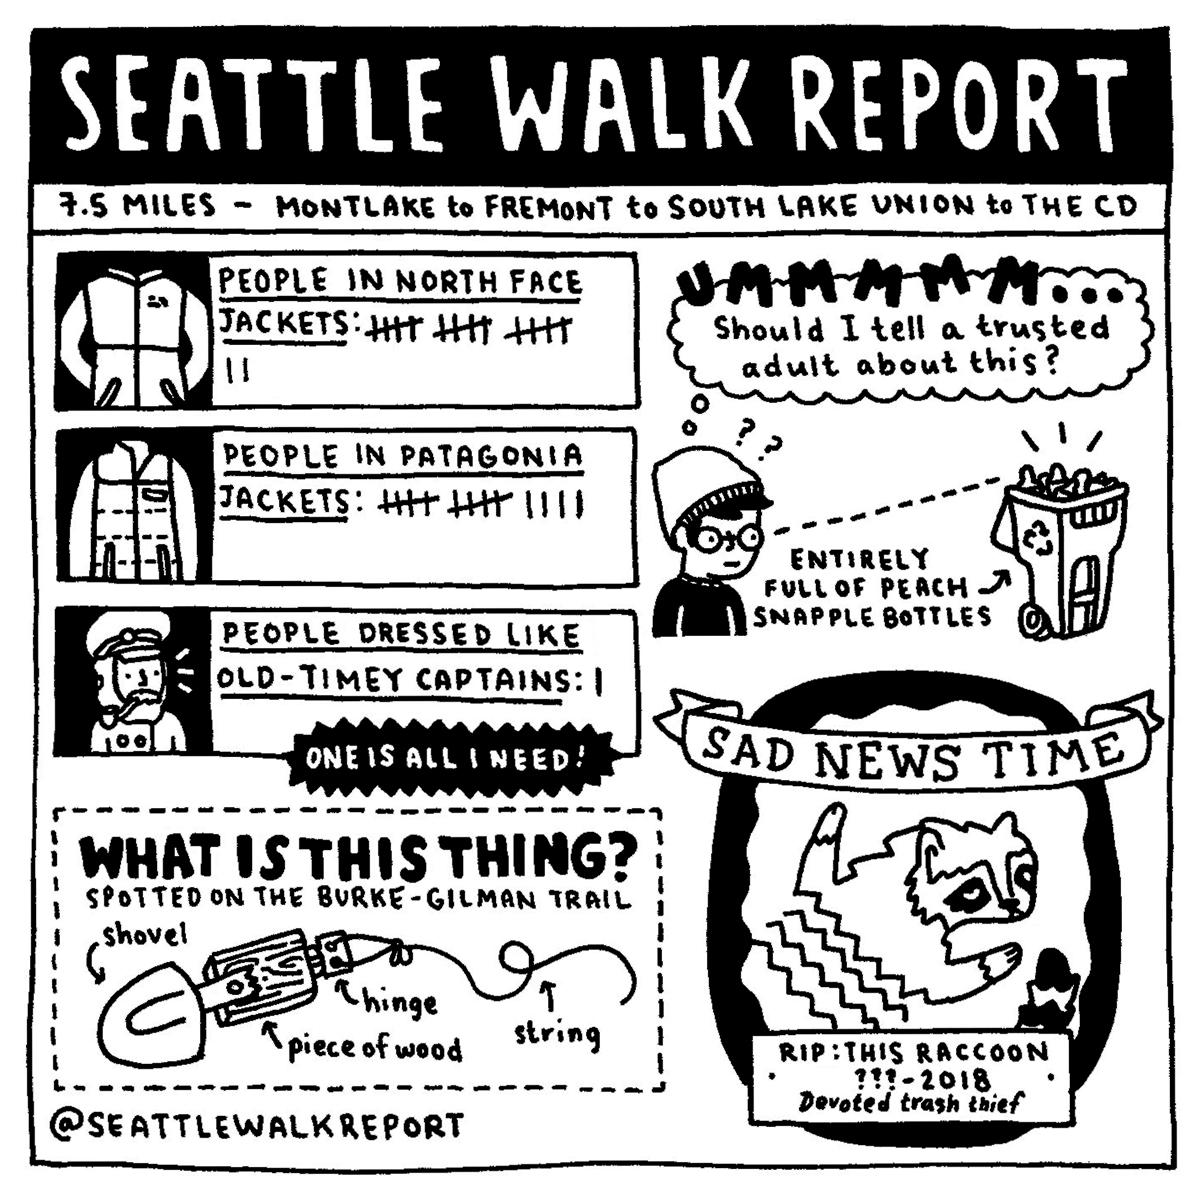 { }(Image: @seattlewalkreport / seattlerefined.com/seattlewalkreport)